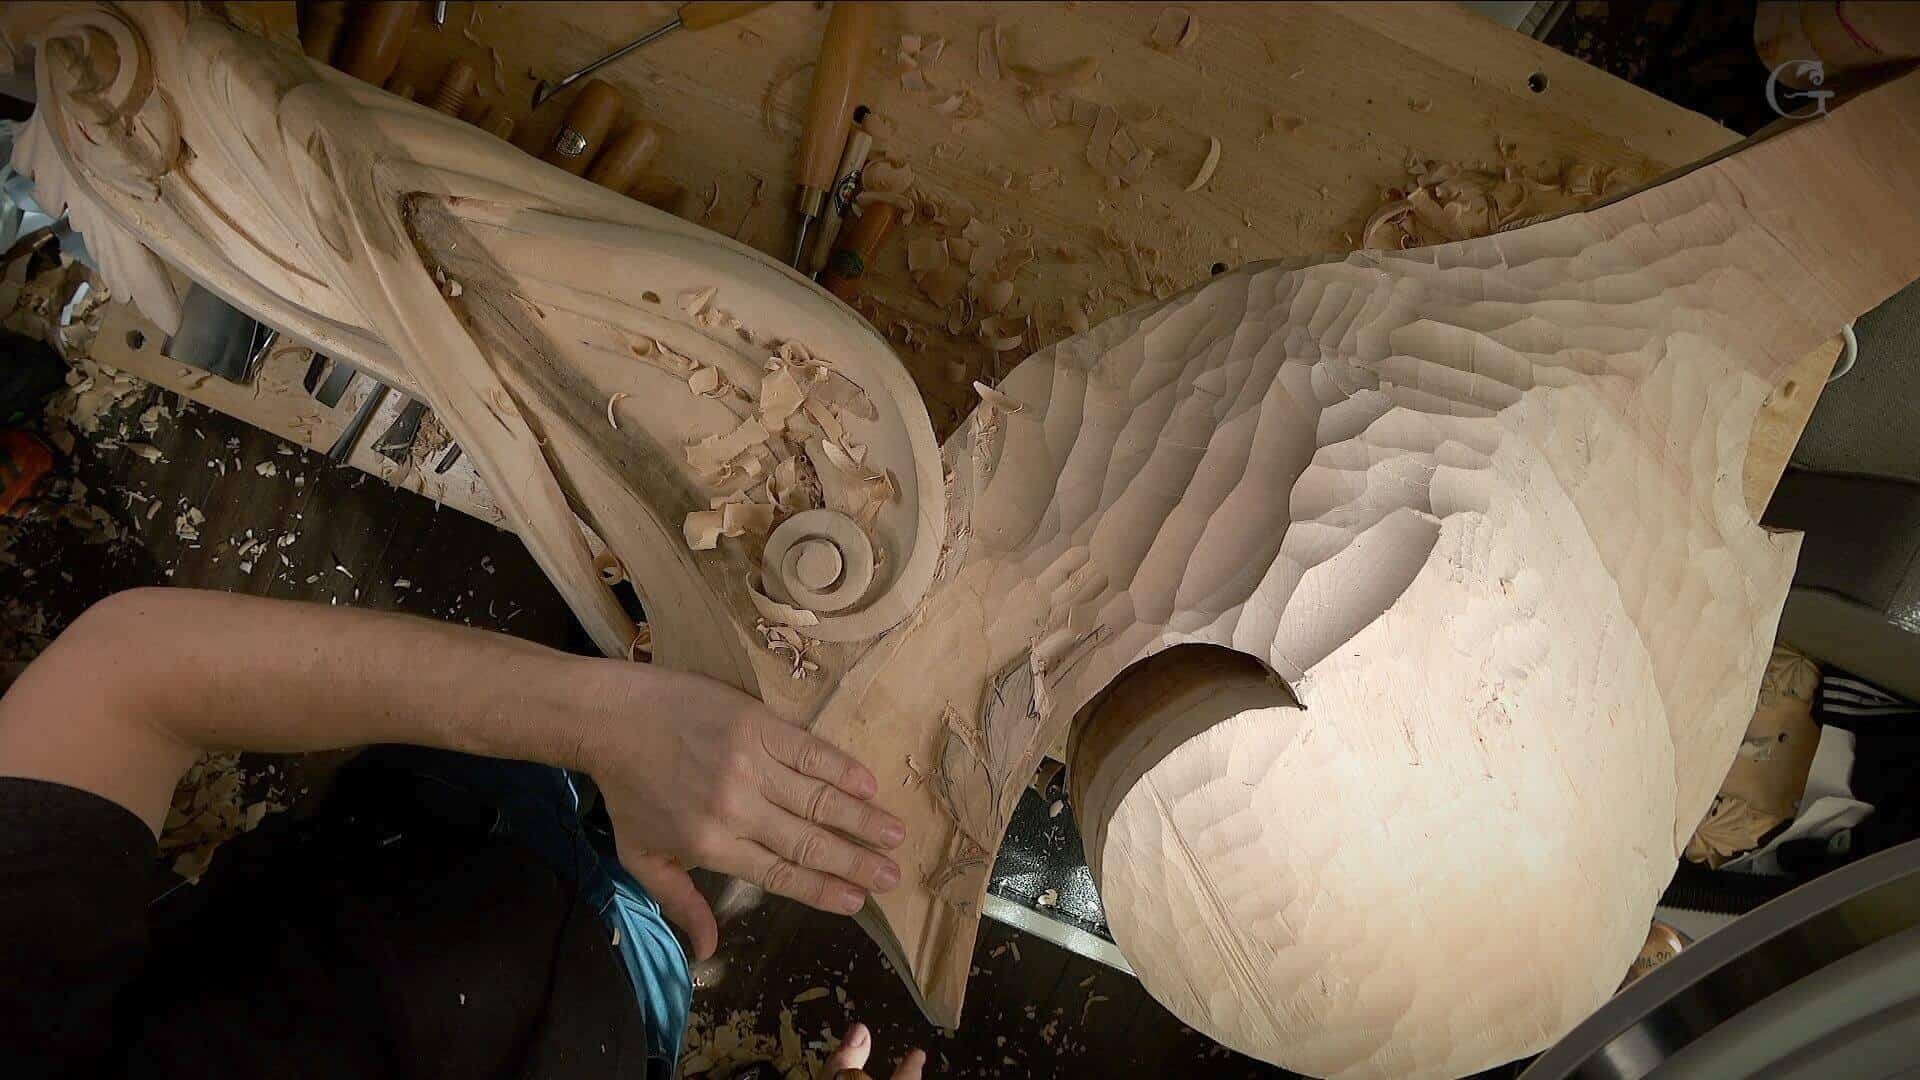 Venetian Style wood Carving -Wood Carving School online- Carving Venice Room Woodcarving course - Authentic Rococo 15th century design - Woodcarving Course online https://schoolofwoodcarving.com/ @woodcarvergrabovetskiy #todaysmaker #craft #skills #makersgonnamake #knowledge #carving #woodworker #woodwork #wooddesign #woodfurniture #interiordesign #carvingwood #woodworking #woodlovers #carpenter #dowoodworking #diy #finewoodworking #woodcraft #artisan #woodcarving #woodart #finewoodworking #handcrafted #idea #woodcarver #woodcarvers #woodcarvingart Learn Wood Carving in Rococo style 15th 16th-century Design. Woodcarving School online. School of Woodworking online. Afrikaans: Leer houtsneewerk in Rococo-styl uit die 16de eeu-ontwerp. Houtsneeskool aanlyn. Skool vir Houtbewerking aanlyn. Arabic: تعلم نحت الخشب بأسلوب الروكوكو تصميم القرن الخامس عشر. مدرسة نحت الخشب على الانترنت. مدرسة النجارة على الانترنت. Azerbaijani: Rokoko üslubunda taxta oyma məlumatlarını öyrənin 15-ci 16-cı əsr Dizayn. Woodcarving School online. İnternetdə ağac emalı məktəbi. Belarusian: Вывучыце разьбу па дрэве ў стылі ракако Дызайн 15-га стагоддзя 16-га стагоддзя. Разьба па дрэве ў Інтэрнэце. Школа дрэваапрацоўкі ў Інтэрнэце. Bulgarian: Научете дърворезбата в стил рококо 15-ти век от 16-ти век. Училище за дърворезба онлайн. Училище по дървообработка онлайн. Bengali: রোকো স্টাইল 15 তম 16 শতকের ডিজাইনে কাঠের খোদাই শিখুন। উডকারভিং স্কুল অনলাইন। অনলাইনে উড ওয়ার্কিং স্কুল। Bosnian: Naučite rezbarenje drveta u stilu rokokoa iz 15. veka. Škola rezbarenja drveta na mreži. Škola obrade drveta online. Catalan: Coneix la talla de fusta en estil rococó disseny del segle XV. Escola de talla en línia Escuela de Fusteria en línia. Cebuano: Hibal-i ang Pagkulit sa kahoy sa istilo sa Rococo nga ika-15 nga Disenyo sa ika-16 nga siglo. Woodcarving School online. School sa Pagtrabaho sa kahoy online. Czech: Naučte se řezbářství v rokokovém designu 15. 16. století. Dřevařská škola online. Škola zpracování dřeva online. Welsh: Dysgu Cerfio Pren mewn arddull Rococo Dylunio 15fed 16eg ganrif. Ysgol Cerfio Pren ar-lein. Ysgol Gwaith Coed ar-lein. Danish: Lær træsnidering i Rococo-stil fra 1500-tallet design. Træskarvskole online. Skolen for træbearbejdning online. German: Lernen Sie Holzschnitzerei im Rokoko-Stil aus dem 15. 16. Jahrhundert. Holzschnitzschule online. Schule für Holzbearbeitung online. Greek: Μάθετε ξυλογλυπτική σε στυλ ροκοκό 15ου 16ου αιώνα Design. Ξυλογλυπτική Σχολή σε απευθείας σύνδεση. Σχολή Ξυλουργικής Online. English: Learn Wood Carving in Rococo style 15th 16th-century Design. Woodcarving School online. School of Woodworking online. Esperanto: Learn Wood Carving in Rococo style 15th 16th-century Design. Woodcarving School online. School of Woodworking online. Spanish: Aprenda tallado en madera en estilo rococó Diseño del siglo XV del siglo XVI. Escuela de tallado en madera en línea. Escuela de carpintería en línea. Estonian: Õppige rokokoo stiilis puunikerdamist 15. 16. sajandi disain. Puunikerduskool Internetis. Puidutöötlemise kool veebis. Basque: Ikasi 16ko mendeko Diseinuaren egur tailako rokoko estiloan. Eskultura eskola online. Zurgintza Eskola online. Persian: حک کردن چوب به سبک روکوکو به سبک طراحی قرن پانزدهم میلادی را بیاموزید. مدرسه نجاری آنلاین. دانشکده نجاری آنلاین. Finnish: Opi puunleikkaus rokokoo-tyyliin 14. vuosisadan 1500-luvun muotoilu. Puunleikkauskoulu verkossa. Puuntyöstökoulu verkossa. French: Apprenez la sculpture sur bois dans un style rococo du 15e au 16e siècle École de sculpture sur bois en ligne. École de menuiserie en ligne. Irish: Foghlaim Snoíodóireacht Adhmaid i nDearadh an 15ú haois sa stíl rocócó. Scoil Snoíodóireachta Adhmaid ar líne. Scoil na Adhmadóireachta ar líne. Galician: Coñece a talla de madeira en estilo rococó o XV. Escola de madeira en liña. Escola de carpintería en liña. Gujarati: રોકોકો શૈલી 15 મી 16 મી સદીની ડિઝાઇનમાં વુડ કોતરકામ શીખો. વૂડકારવીંગ શાળા ઓનલાઇન. Woodનલાઇન વુડવર્કિંગ શાળા. Hausa: Koyi Sarkar da katako a cikin salon Rococo Tsarin 15th na 16th. Makaranta ta katako akan layi. School of Woodworking kan layi. Hindi: रोकोको शैली में जानें लकड़ी की नक्काशी 15 वीं 16 वीं शताब्दी की डिजाइन। वुडकार्विंग स्कूल ऑनलाइन। स्कूल ऑफ वुडवर्किंग ऑनलाइन। Hmong: Learn Wood Carving in Rococo style 15th 16th-century Design. Woodcarving School online. School of Woodworking online. Croatian: Naučite rezbarenje drva u stilu rokokoa iz dizajna 15. stoljeća. Škola rezbarenja drveta na mreži. Škola obrade drva na mreži. Haitian Creole: Aprann Bwa découper nan style rokoko 15th 16th century Design. Woodcarving School sou entènèt. Lekòl Woodworking sou entènèt. Hungarian: Ismerje meg a fafaragást rokokó stílusban. A 15. és 16. századi formatervezés. Fafaragó iskola online. Famegmunkáló Iskola online. Armenian: Սովորեք փայտի փորագրություն Ռոկոկոյի ոճով 15-րդ դարի դիզայնի մեջ: Փայտի փորագրության դպրոցը առցանց: Փայտամշակման դպրոց առցանց: Indonesian: Pelajari Ukiran Kayu dengan gaya Rococo 15th abad ke-16. Sekolah Ukiran Kayu online. Sekolah Woodworking online. Igbo: Mụta ịkwa osisi na ụdị Rococo eji ejiji na narị afọ nke iri na isii. Carlọ Akwụkwọ Woodcarving online. Oflọ akwụkwọ nke Woodworking online. Icelandic: Lærðu tréskurð í Rococo-stíl 15. 16. aldar hönnun. Tréskurðarskóli á netinu. Trésmíðaskóli á netinu. Italian: Scopri l'intaglio del legno in stile rococò del XV secolo. Scuola di intaglio del legno online. Scuola di falegnameria online. Hebrew: למד גילוף בעץ בסגנון רוקוקו בעיצוב המאה ה -16. בית הספר לגילוף בעץ ברשת. בית הספר לעבודות עץ מקוון. Japanese: 15世紀から16世紀のロココ様式の木彫りを学びます。木彫り学校オンライン。木工学校オンライン。 Javanese: Sinau Ngukir Kayu kanthi Desain Ringgit kaping 16 kanggo abad 16. Woodcarving School online. Sekolah Kayu Kayu online. Georgian: შეიტყვეთ ხის მოჩუქურთმება როკოკოს სტილში მე -16 საუკუნის მე -16 დიზაინში. Woodcarving სკოლა ხაზზე. ხე-ტყის ხის სკოლა ხაზზე. Kazakh: Рококо стилінде ағаш кесуді үйреніңіз 15-ші 16 ғасырдағы дизайн. Ағаш кесу мектебі онлайн. Интернеттегі ағаш өңдеу мектебі. Khmer: រៀនឆ្លាក់ឈើតាមរចនាបថរ៉ូឆកូទី ១៥ រចនាសតវត្សរ៍ទី ១៦ ។ សាលាឈើលើអ៊ីនធឺណិត។ សាលាធ្វើអំពីឈើតាមអ៊ិនធរណេត។ Kannada: ರೊಕೊಕೊ ಶೈಲಿಯಲ್ಲಿ 15 ನೇ 16 ನೇ ಶತಮಾನದ ವಿನ್ಯಾಸದಲ್ಲಿ ವುಡ್ ಕೆತ್ತನೆಯನ್ನು ಕಲಿಯಿರಿ. ವುಡ್‌ಕಾರ್ವಿಂಗ್ ಶಾಲೆ ಆನ್‌ಲೈನ್. ಸ್ಕೂಲ್ ಆಫ್ ವುಡ್ ವರ್ಕಿಂಗ್ ಆನ್ಲೈನ್. Korean: 로코코 스타일의 15 세기 16 세기 디자인의 나무 조각을 배우십시오. 목각 학교 온라인. 온라인 목공 학교. Latin: Learn Wood Carving in Rococo style 15th 16th-century Design. Woodcarving School online. School of Woodworking online. Lao: ຮຽນຮູ້ການແກະສະຫຼັກໄມ້ໃນແບບ Rococo ວັນທີ 15 ການອອກແບບສະຕະວັດທີ 16. ໂຮງຮຽນແກະສະຫຼັກໄມ້ online. ໂຮງຮຽນໄມ້ປ່ອງ online. Lithuanian: Sužinokite apie rokoko stiliaus medžio drožybą. XV – XVI amžiaus dizainas. Medžio drožybos mokykla internete. Medienos apdirbimo mokykla internete. Latvian: Apgūstiet kokgriezumu rokoko stilā 15. 16. gadsimta dizains. Kokapstrādes skola tiešsaistē. Kokapstrādes skola tiešsaistē. Malagasy: Ianaro ny sokitra hazo amin'ny fomba fanao amin'ny taonjato faha-16 tamin'ny taonjato faha-16. Woodcarving School an-tserasera. Sekoly amin'ny fanamboarana kitay an-tserasera. Maori: Akohia te whakairo rakau i roto i te ahua o Rococo te Rorohiko tekau ma wha 16. Woodcarving School ma te ipurangi. Te Kura o Nga mahi-a-ipurangi. Macedonian: Научете резба на дрво во дизајн на рококо во 15-тиот век од 16-от век. Училиште за резба преку Интернет. Школата за обработка на дрво преку Интернет. Malayalam: പതിനഞ്ചാം നൂറ്റാണ്ടിലെ രൂപകൽപ്പനയിൽ റോക്കോകോ ശൈലിയിൽ മരം കൊത്തുപണി പഠിക്കുക. വുഡ്‌കാർവിംഗ് സ്‌കൂൾ ഓൺ‌ലൈൻ. സ്കൂൾ ഓഫ് വുഡ് വർക്കിംഗ് ഓൺ‌ലൈൻ. Mongolian: 16-р зууны 15-р зууны Рококогийн хэв маягаар мод сийлбэр сур. Модон эдлэлийн сургууль онлайн. Модон эдлэлийн сургууль онлайн. Marathi: रोकोको शैली 15 व्या 16 व्या शतकातील डिझाइनमध्ये वुड कोरीविंग जाणून घ्या. वुडकारिव्ह स्कूल वुडवर्किंग स्कूल ऑनलाईन. Malay: Belajar Ukiran Kayu dalam gaya Rococo yang bergaya ke-15 Abad ke-16. Woodcarving School dalam talian. Sekolah Kerja Kayu dalam talian. Maltese: Tgħallem Tqaxxir tal-Injam fl-istil tar-rokokò fid-Disinn tas-16-il seklu. Skola tal-injam fuq l-injam. Iskola ta 'l-injam fuq l-internet. Myanmar (Burmese): ၁၅ ရာစု ၁၆ ရာစုဒီဇိုင်းတွင်ရိုကိုကိုစတိုင်သစ်သားထွင်းခြင်းလေ့လာခြင်း။ Woodcarving ကျောင်းအွန်လိုင်း။ အွန်လိုင်းသစ်သားကျောင်း။ Nepali: रोकोको शैली १ 15 औं १ century औं शताब्दीको डिजाइनमा काठ नक्काशी गर्ने सिक्नुहोस्। वुडकर्भिंग स्कूल अनलाइन। वुडवर्किंग अनलाइन स्कूल। Dutch: Leer houtsnijden in Rococo-stijl 15e 16e-eeuws ontwerp. Houtsnijschool online. School voor houtbewerking online. Norwegian: Lær treskjæring i Rococo-stil fra 1500-tallet design. Treskjæringsskole online. School of Woodworking online. Chichewa: Phunzirani Kutema Kwa Wood mu Rococo kalembedwe ka 15th 16th Design. Sukulu Yophunzitsa Mtengo pa intaneti. Sukulu ya Woodworking pa intaneti. Punjabi: 15 ਵੀਂ 16 ਵੀਂ ਸਦੀ ਦੇ ਡਿਜ਼ਾਇਨ ਵਿਚ ਰੋਕੋਕੋ ਸ਼ੈਲੀ ਵਿਚ ਲੱਕੜ ਦੀ ਕਟਾਈ ਸਿੱਖੋ. ਵੁੱਡਕਰਾਵਿੰਗ ਸਕੂਲ .ਨਲਾਈਨ. ਵੁੱਡਵਰਕਿੰਗ ਦਾ ਸਕੂਲ .ਨਲਾਈਨ. Polish: Naucz się rzeźbienia w drewnie w stylu rokoko z XVI wieku. Szkoła rzeźby w drewnie online. School of Woodworking online. Portuguese: Aprenda escultura em madeira em estilo rococó, design do século XVI. Woodcarving School on-line. Escola de Carpintaria online. Romanian: Aflați cioplirea lemnului în stil rocococ din secolul al XV-lea. Școala de sculptură în lemn online. Scoala de prelucrare a lemnului online. Russian: Изучите резьбу по дереву в стиле рококо в стиле XVI XVI века. Школа резьбы по дереву онлайн. Школа деревообработки онлайн. Sinhala: 15 වන 16 වන සියවසේ නිර්මාණය රොකෝකෝ විලාසිතාවෙන් ලී කැටයම් ඉගෙන ගන්න. වුඩ්කාර්විං පාසල මාර්ගගතව. ලී වැඩ පාසල සමඟ අමුත්තන්. Slovak: Naučte sa rezbárske práce v rokokovom štýle 15. Dizajn 16. storočia. Škola rezbárstva online. Škola spracovania dreva online. Slovenian: Naučite se rezbarjenja lesa v rokoko oblikovanju iz 15. stoletja. Šola rezbarjenja na spletu. Šola za lesarstvo na spletu. Somali: Baro Qaadashada alwaaxa ee Rococo qaabka 15naad Qarnigii 16aad. Iskuulka internetka qoryo qoryo leh. Iskuulka Woodworking onlaynka ah. Albanian: Mësoni Gdhendjen e drurit në stilin Rokoko, Dizajnin e shekullit të XVI. Shkolla e gdhendjes në internet Shkolla e Njoftimit në internet. Serbian: Научите резбарење дрвета у стилу рококоа из 15. века из 16. века. Школа резбарења дрвета на мрежи. Школа обраде дрвета онлине. Sesotho: Ithute Wood Carving ka Rococo setaele sa 15th sa 16th Design. Sekolo sa Woodlinving inthaneteng. Sekolo sa Woodworking inthaneteng. Sundanese: Diajar Ukiran Kayu dina gaya Rococo 15 Desain ka-16. Woodcarving Sakola online. Sakola Woodworking online. Swedish: Lär dig träsnideri i Rococo-stil från 1500-talets design. Träsnittskola online. Skolan för träbearbetning online. Swahili: Jifunze kuchonga kuni kwa mtindo wa Rococo 15 wa karne ya 16. Shule ya Kutengeneza miti mkondoni. Shule ya Woodworking mkondoni. Tamil: ரோகோகோ பாணியில் 15 வது 16 ஆம் நூற்றாண்டின் வடிவமைப்பில் மர செதுக்கலைக் கற்றுக்கொள்ளுங்கள். வூட்கார்விங் பள்ளி ஆன்லைனில். வூட்வொர்க்கிங் பள்ளி ஆன்லைன். Telugu: రోకోకో శైలిలో 15 వ 16 వ శతాబ్దపు డిజైన్‌లో వుడ్ కార్వింగ్ నేర్చుకోండి. వుడ్‌కార్వింగ్ స్కూల్ ఆన్‌లైన్. స్కూల్ ఆఫ్ వుడ్ వర్కింగ్ ఆన్‌లైన్. Tajik: Кашидани чӯбро дар услуби Рококо ёд гиред 15. Дизайни асри 16 16. Мактаби чӯбкорӣ онлайн. Мактаби чубу тахта онлайн. Thai: เรียนรู้การแกะสลักไม้ในสไตล์โรโคโคที่ 15 ในศตวรรษที่ 16 โรงเรียนสอนแกะสลักไม้ออนไลน์ School of Woodworking ออนไลน์ Filipino: Alamin ang Pag-ukit ng Wood sa istilo ng Rococo ika-15 Disenyo ng ika-16 siglo. Woodcarving School online. Paaralan ng Woodworking online. Turkish: Rokoko tarzı 15. yüzyıl tasarımında Ahşap Oymacılığı öğrenin. Oymacılığı Okulu çevrimiçi. Ağaç İşleme Okulu çevrimiçi. Ukrainian: Вивчіть різьблення по дереву в стилі рококо 15-го століття 16 століття. Різьба по дереву онлайн. Школа деревообробки онлайн. Urdu: 15 ویں 16 ویں صدی کے ڈیزائن میں روکوکو طرز میں لکڑی کی نقش نگاری سیکھیں۔ ووڈ کارونگ اسکول آن لائن. ووڈ ورکنگ کا اسکول آن لائن. Uzbek: Rokoko uslubida yog'och o'ymakorligini o'rganing. Yog'och o'ymakorligi maktabi onlayn. Yog'ochni qayta ishlash maktabi onlayn. Vietnamese: Tìm hiểu Khắc gỗ theo phong cách Rococo Thiết kế thế kỷ 16. Trường khắc gỗ trực tuyến. Trường học chế biến gỗ trực tuyến. Yiddish: לערן האָלץ קאַרווינג אין ראָקאָקאָ סטיל פון די 16 יאָרהונדערט פּלאַן. וואָאָדקאַרווינג שולע אָנליין. שולע פֿאַר וואָאָדוואָרקינג אָנליין. Yoruba: Kọ ẹkọ Ifi igi ni ara Rococo ara 15th-orundun 16th. Ile-iwe Woodcarving lori ayelujara. Ile-iwe ti Woodworking online. Chinese: 学习洛可可风格的16世纪木雕设计。在线木雕学校。木工学校在线。 Chinese (Simplified): 学习洛可可风格的16世纪木雕设计。在线木雕学校。木工学校在线。 Chinese (Traditional): 學習洛可可風格的16世紀木雕設計。在線木雕學校。木工學校在線。 Zulu: Funda Ukhuni Kwezinkuni ngesitayela seRococo 15th yekhulu le-16 leminyaka. Isikole Sokubopha Izinkuni online. Isikole se Woodworking online.